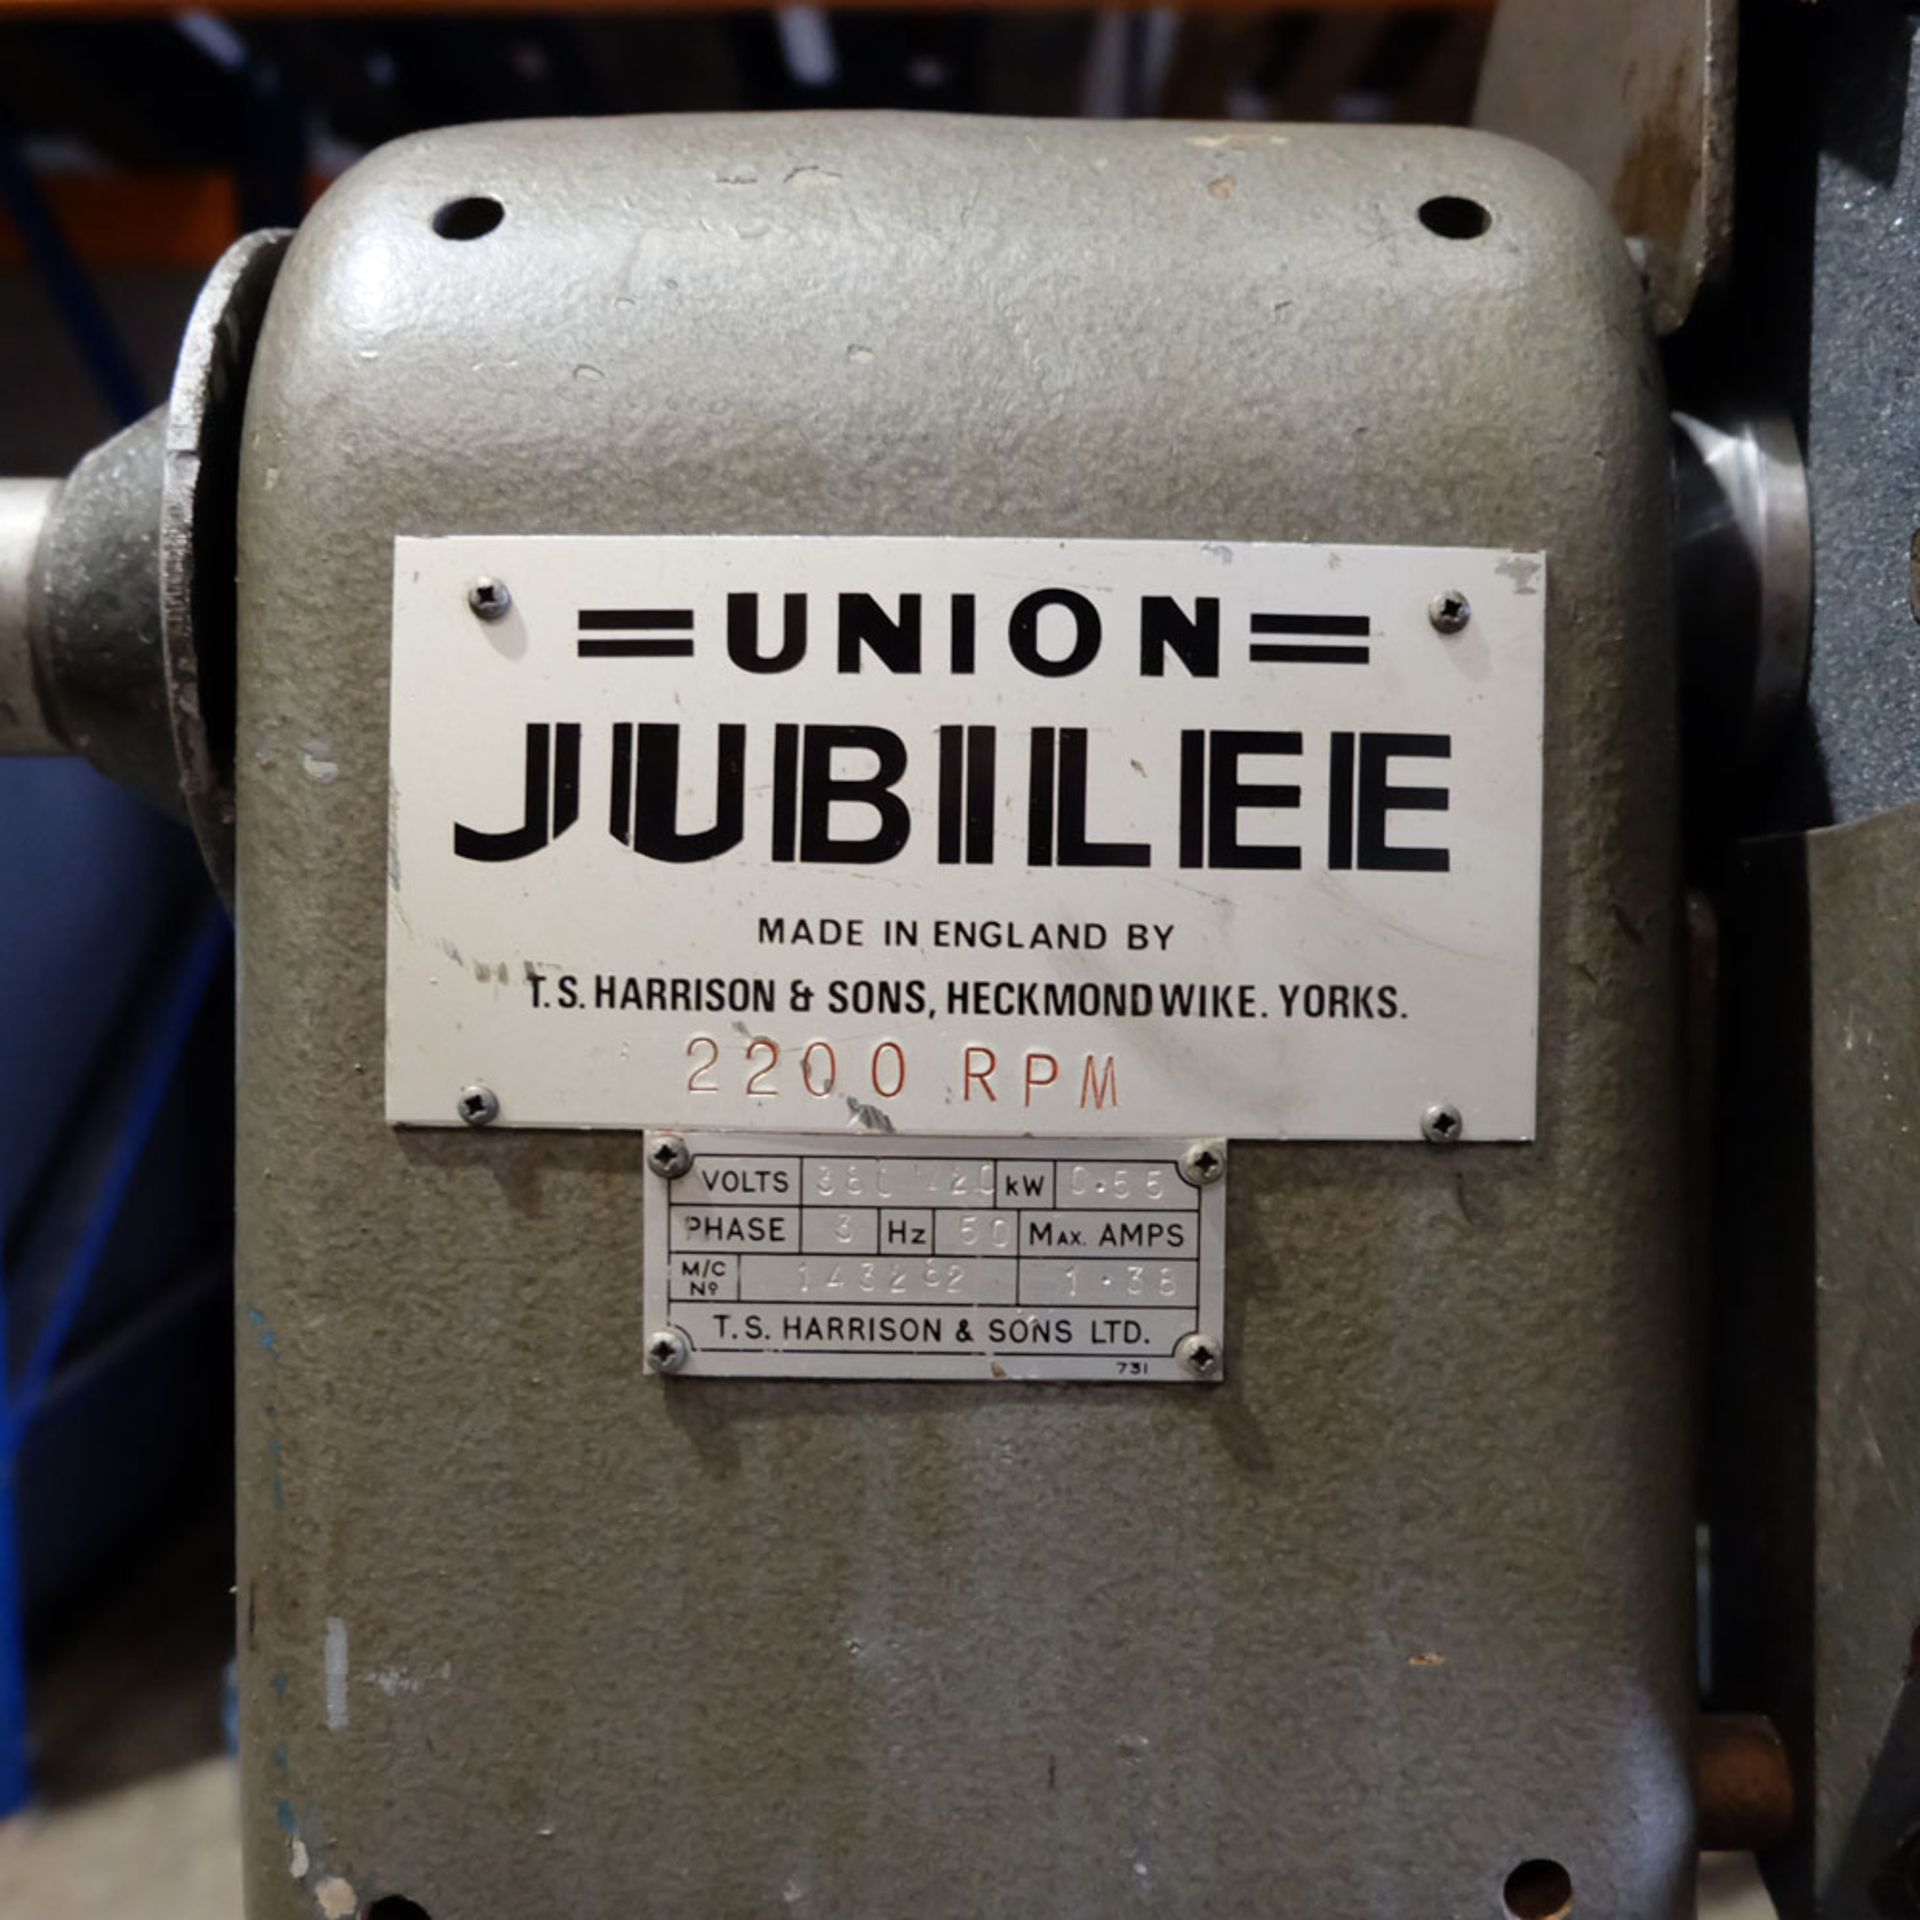 Union Jubilee Double Ended Pedestal Tool Grinding & Polishing Machine. Speed 2200rpm. - Image 4 of 6